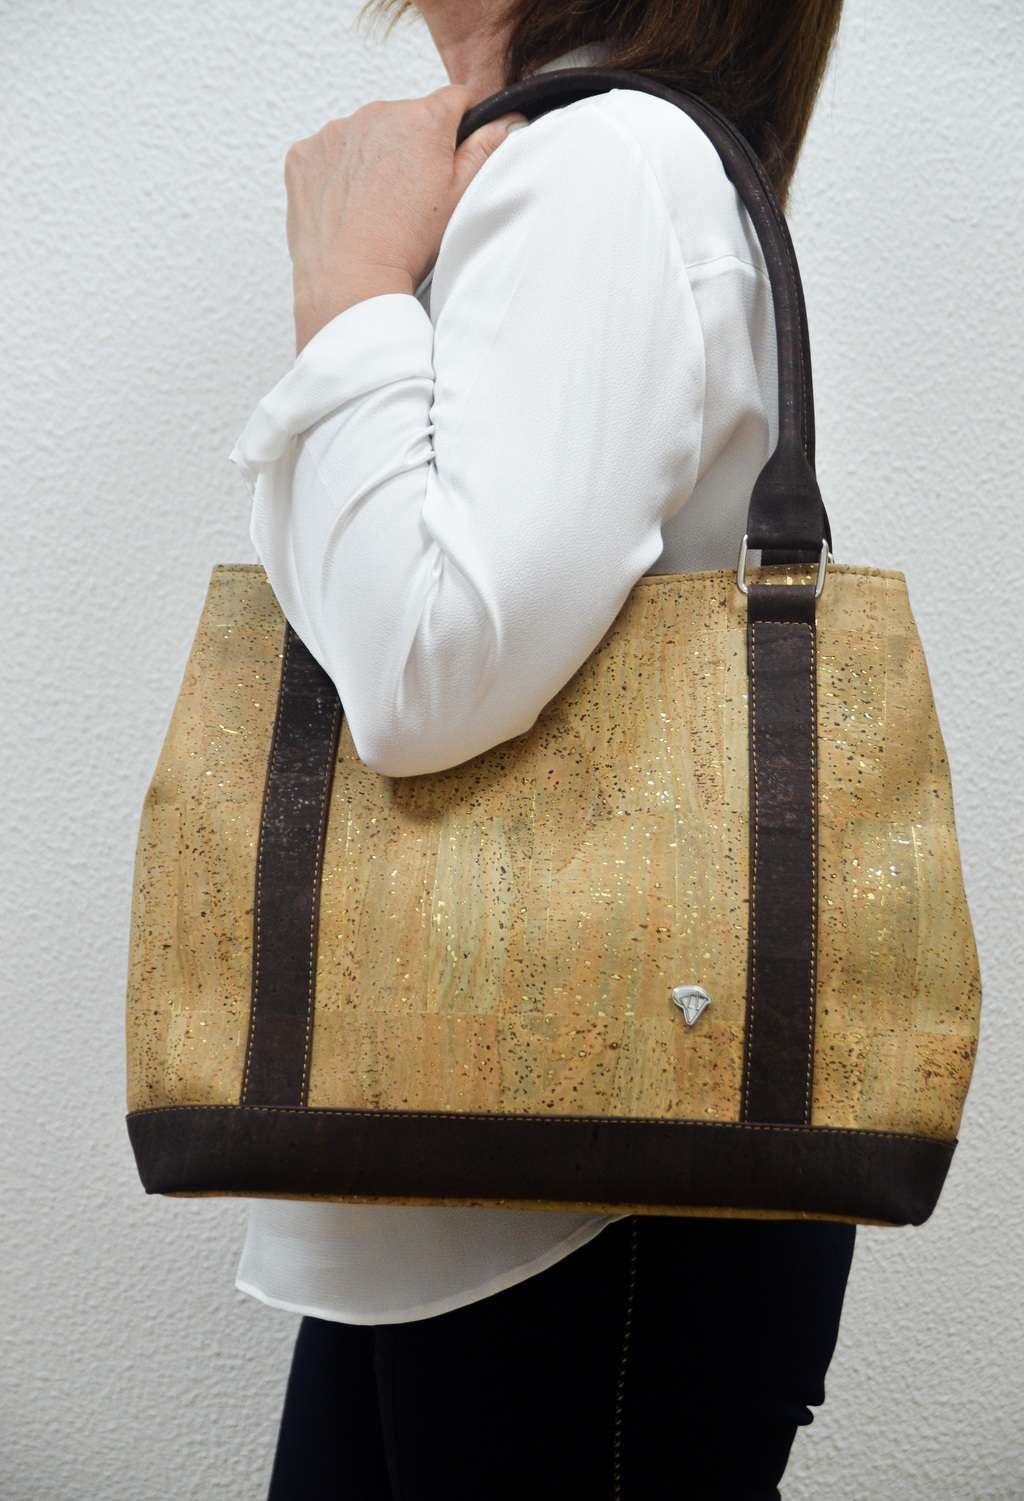 Women wearing a Beige Cork Handbag Germania - CESARSCORK